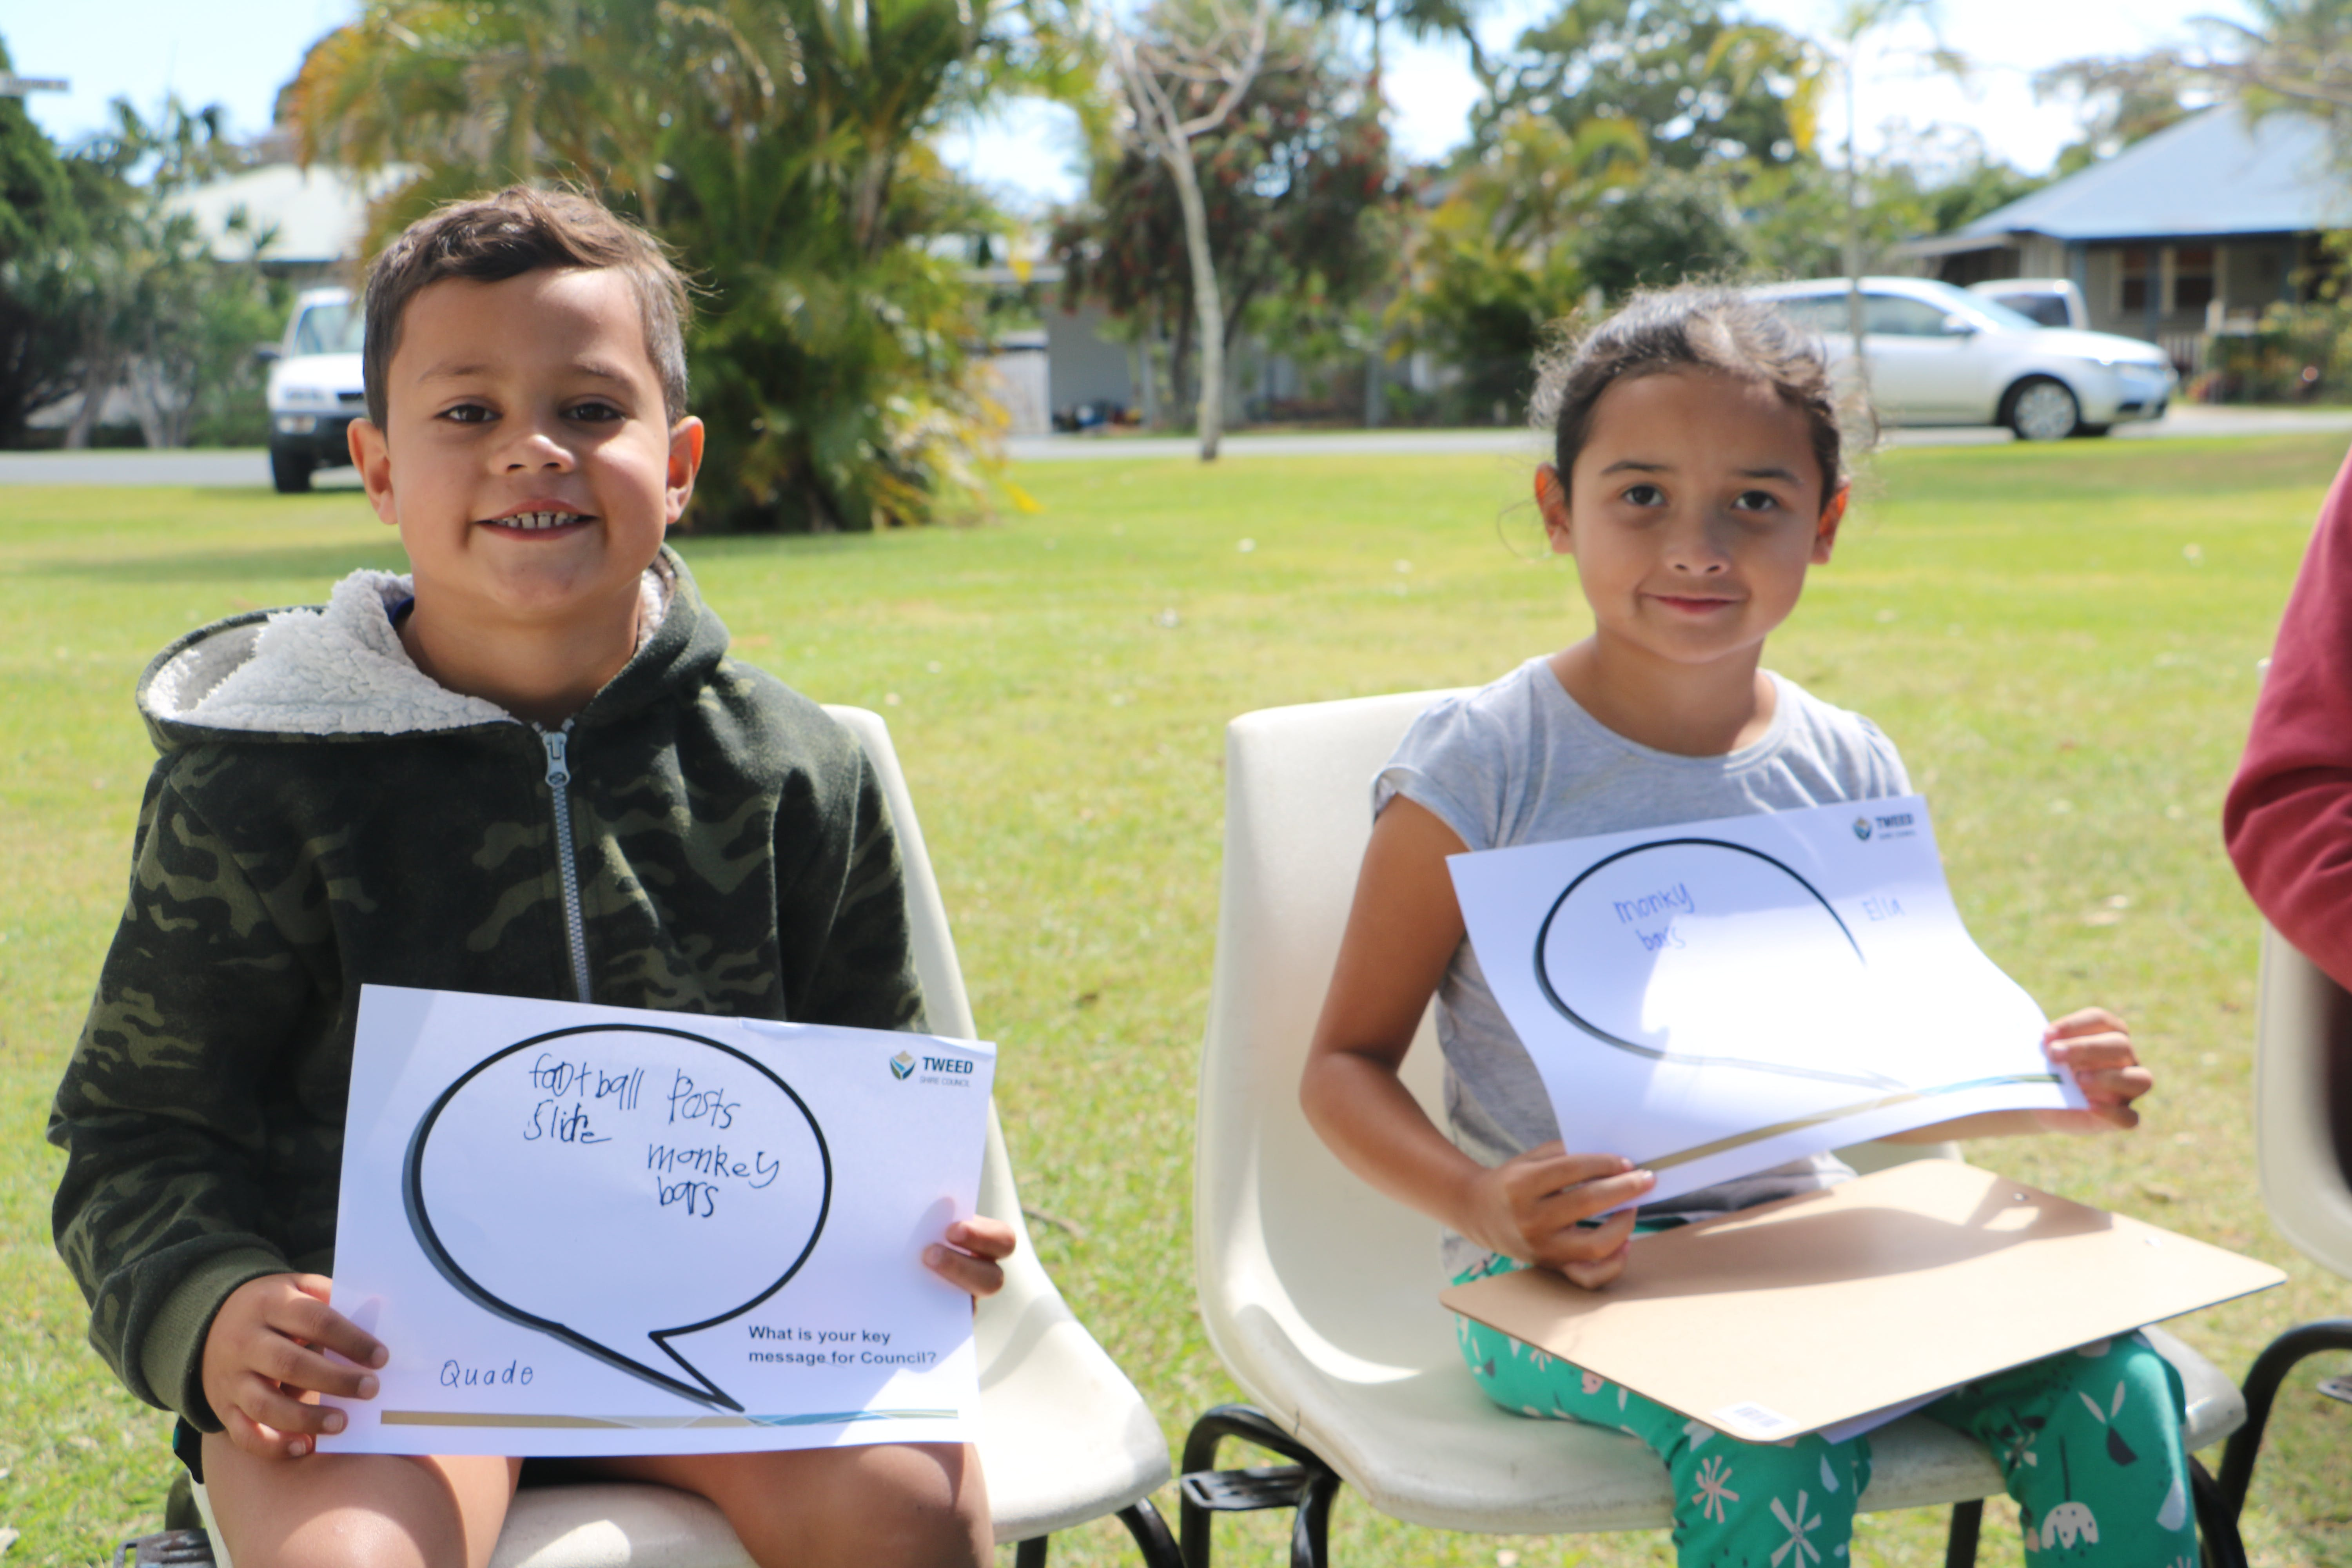 Local children sharing their ideas for the park upgrade at South Tweed Heads